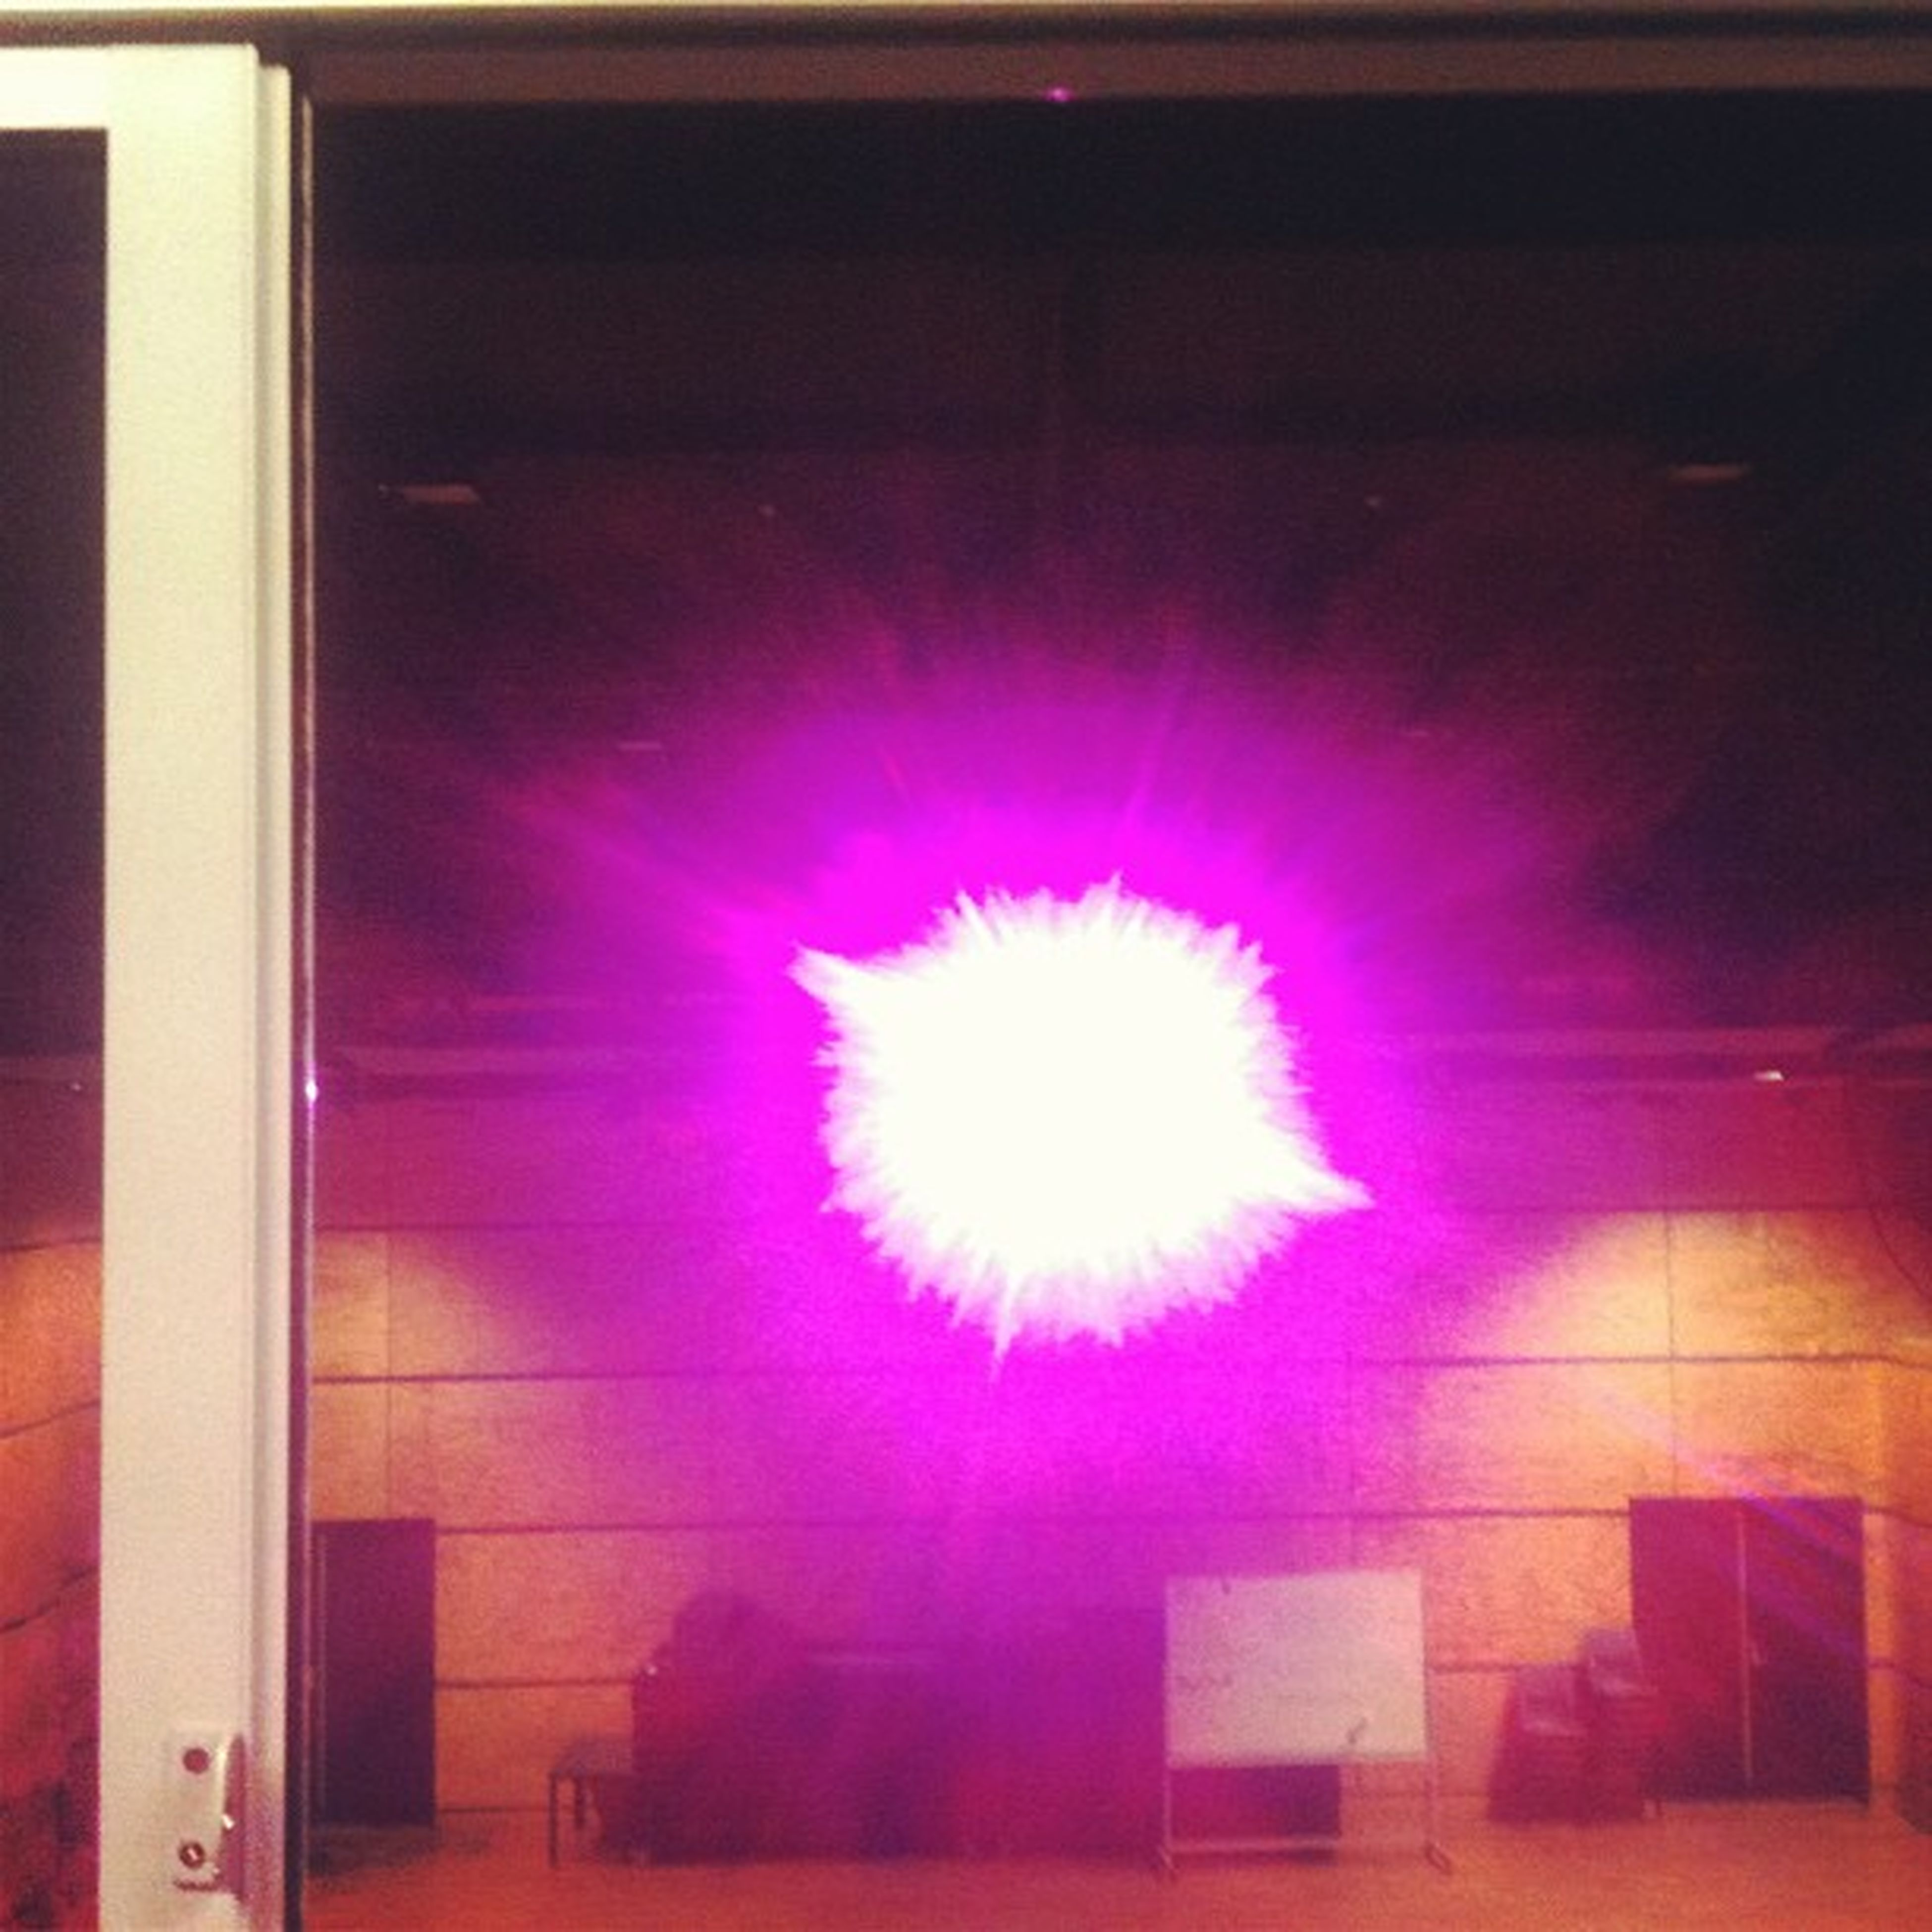 indoors, illuminated, window, built structure, architecture, flower, lighting equipment, night, pink color, glass - material, multi colored, building exterior, wall - building feature, house, no people, decoration, auto post production filter, red, home interior, purple